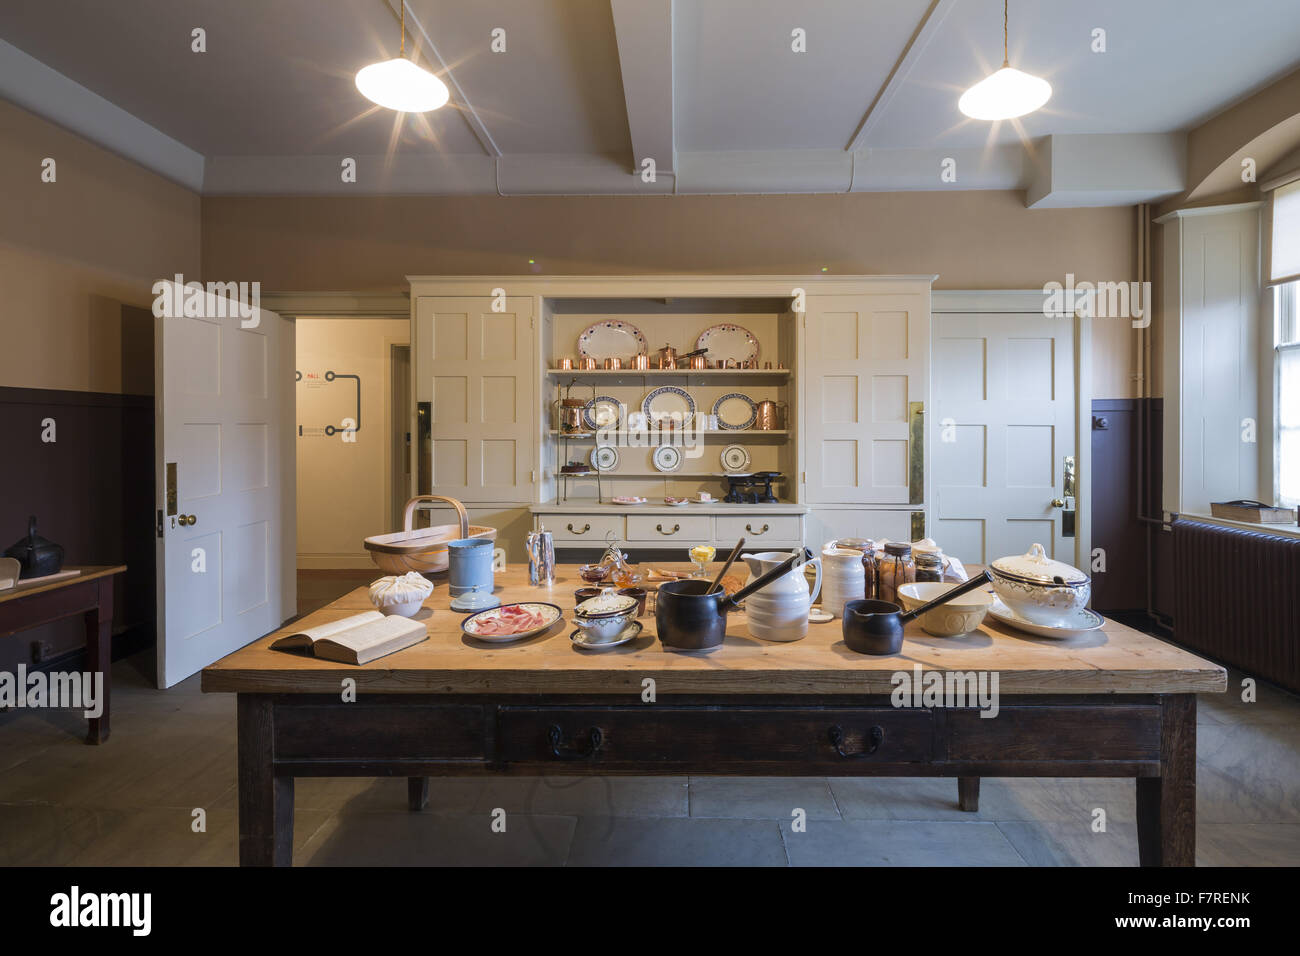 House And Garden Kitchens A Display Of Crockery And Other Objects On The Kitchen Table At